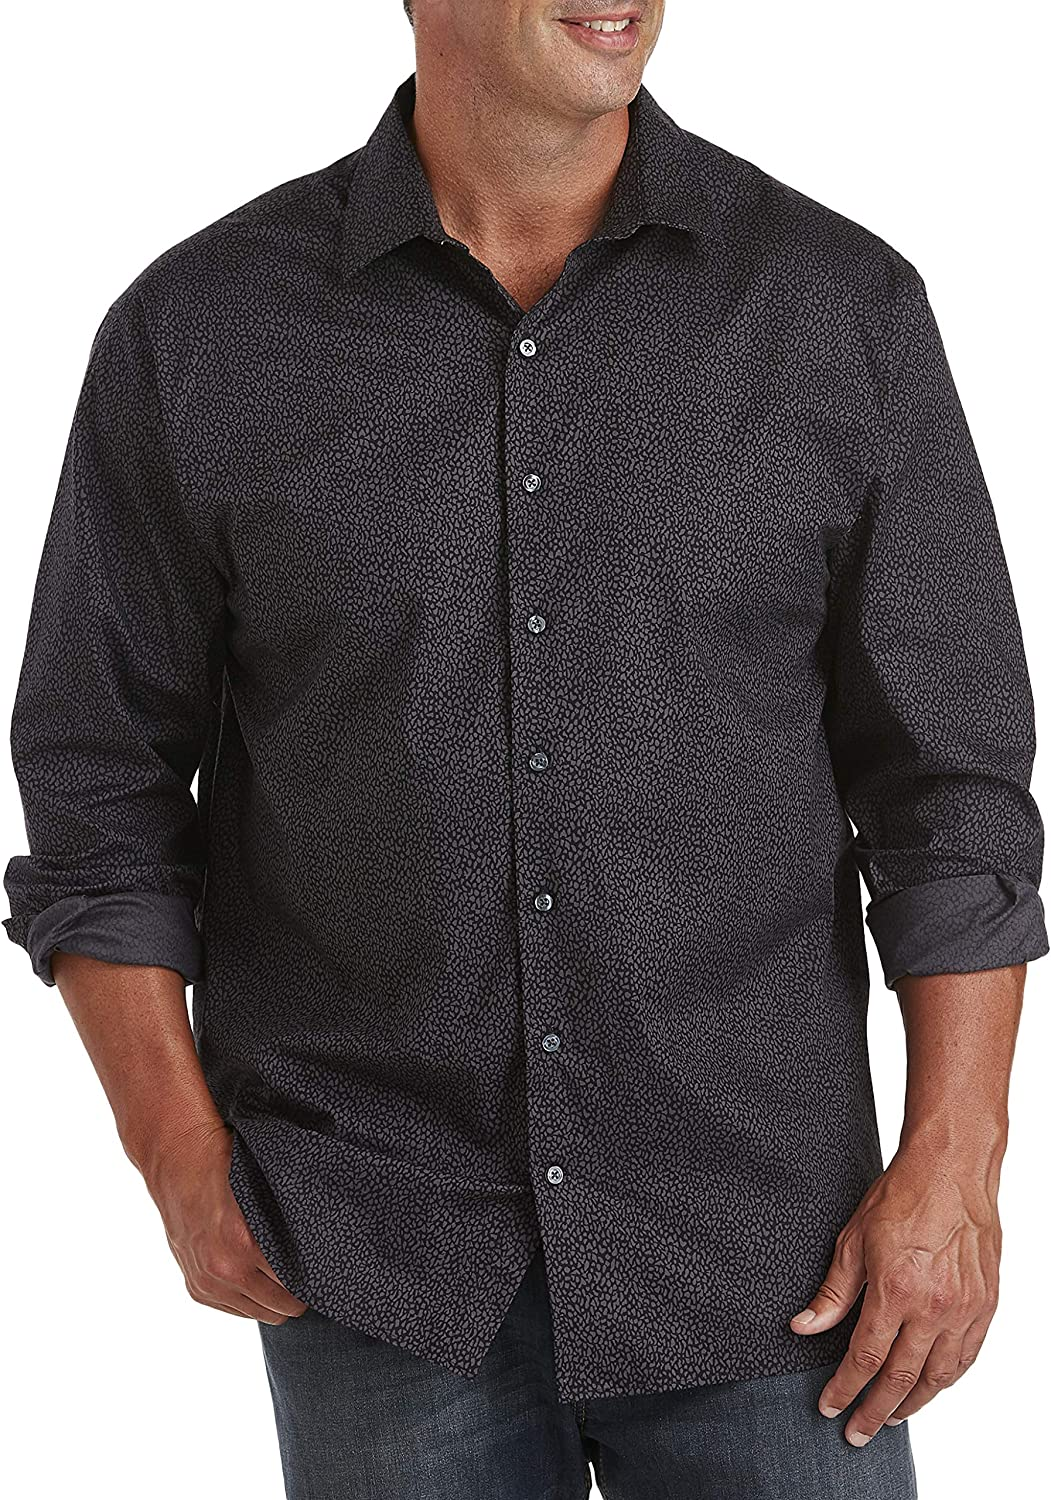 DXL Synrgy Big and Tall Stretch Sport Shirt, Blackened Pearl